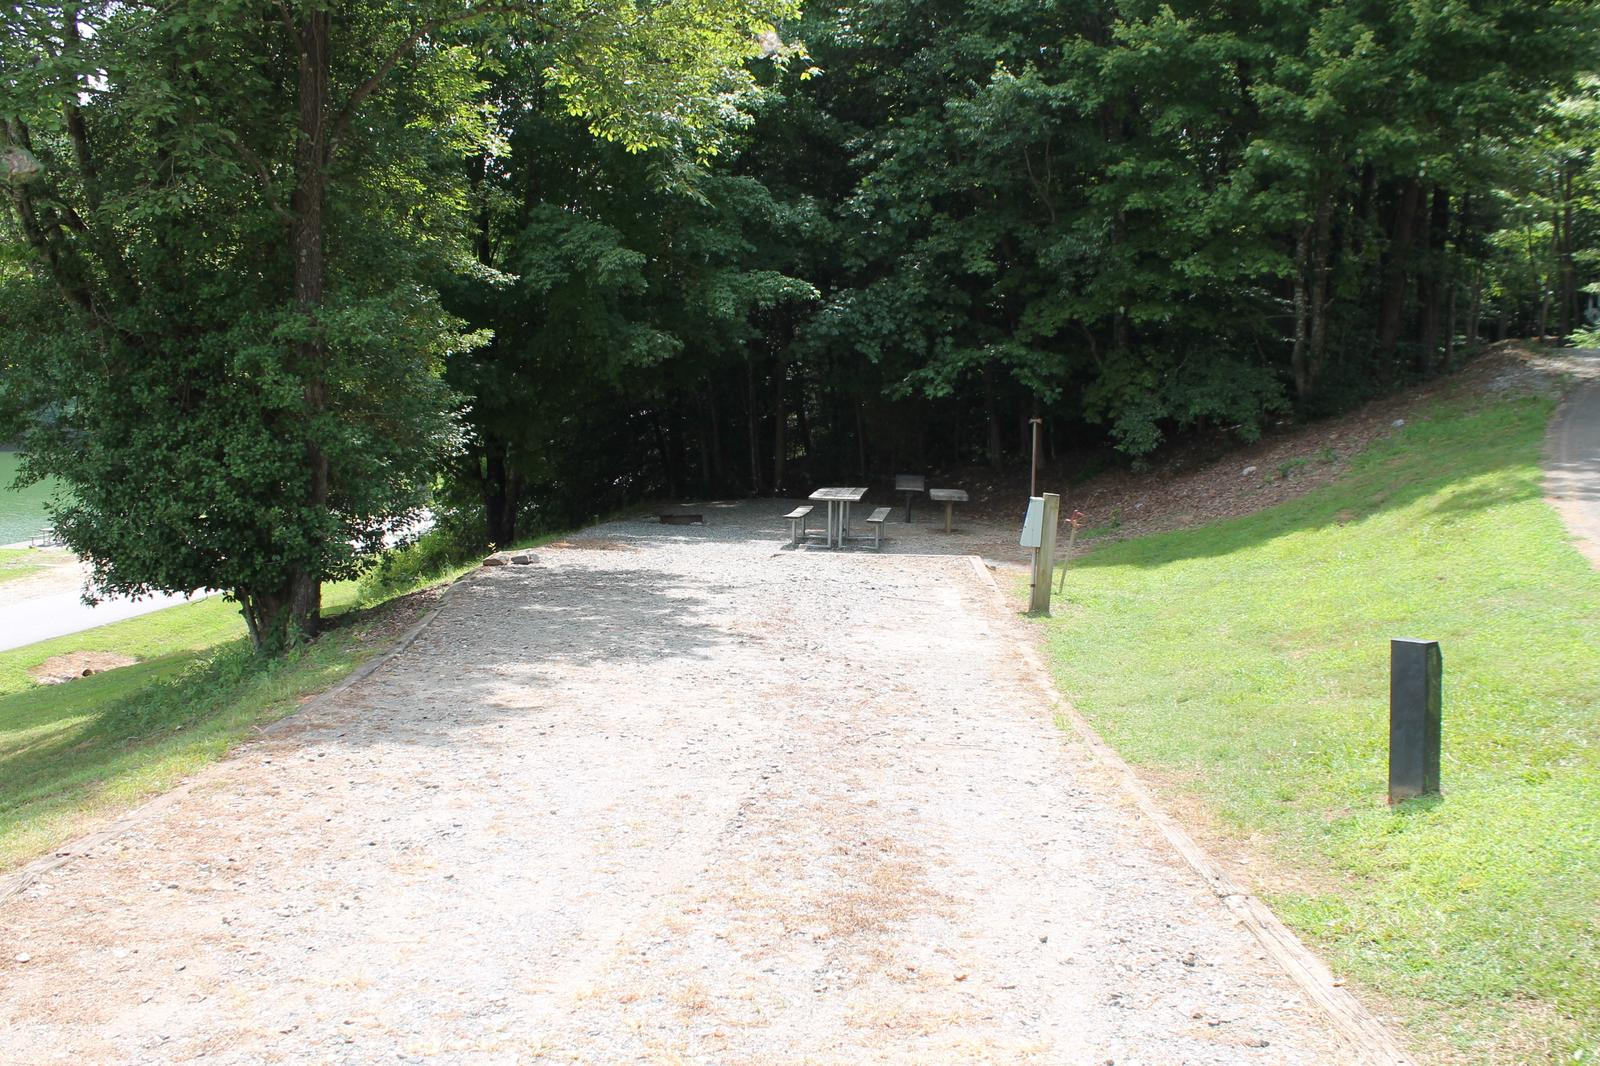 Long gravel pull in and site with table, fire pit, grill